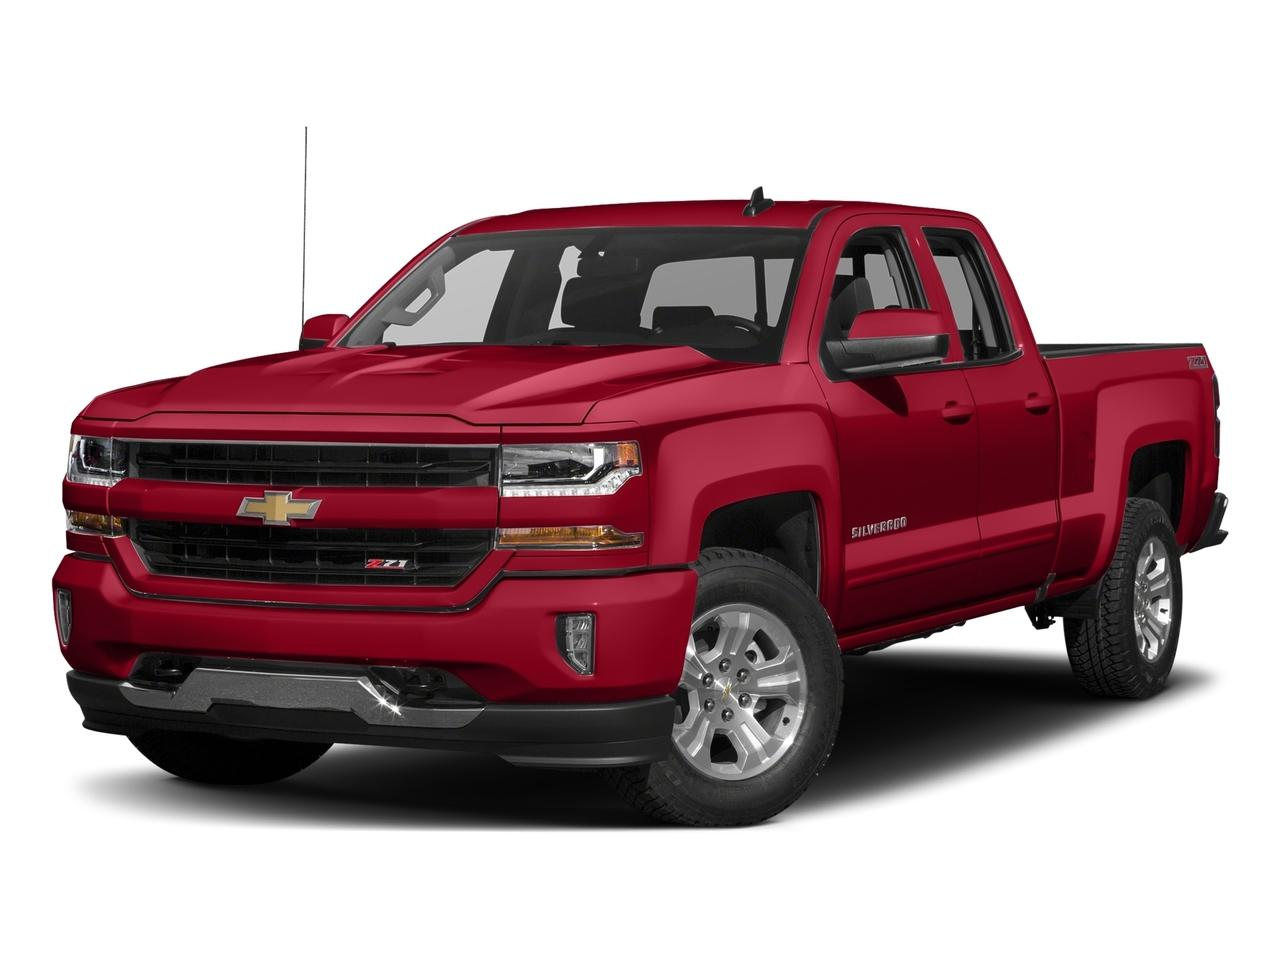 2018 Chevrolet Silverado 1500 Vehicle Photo in Willoughby Hills, OH 44092